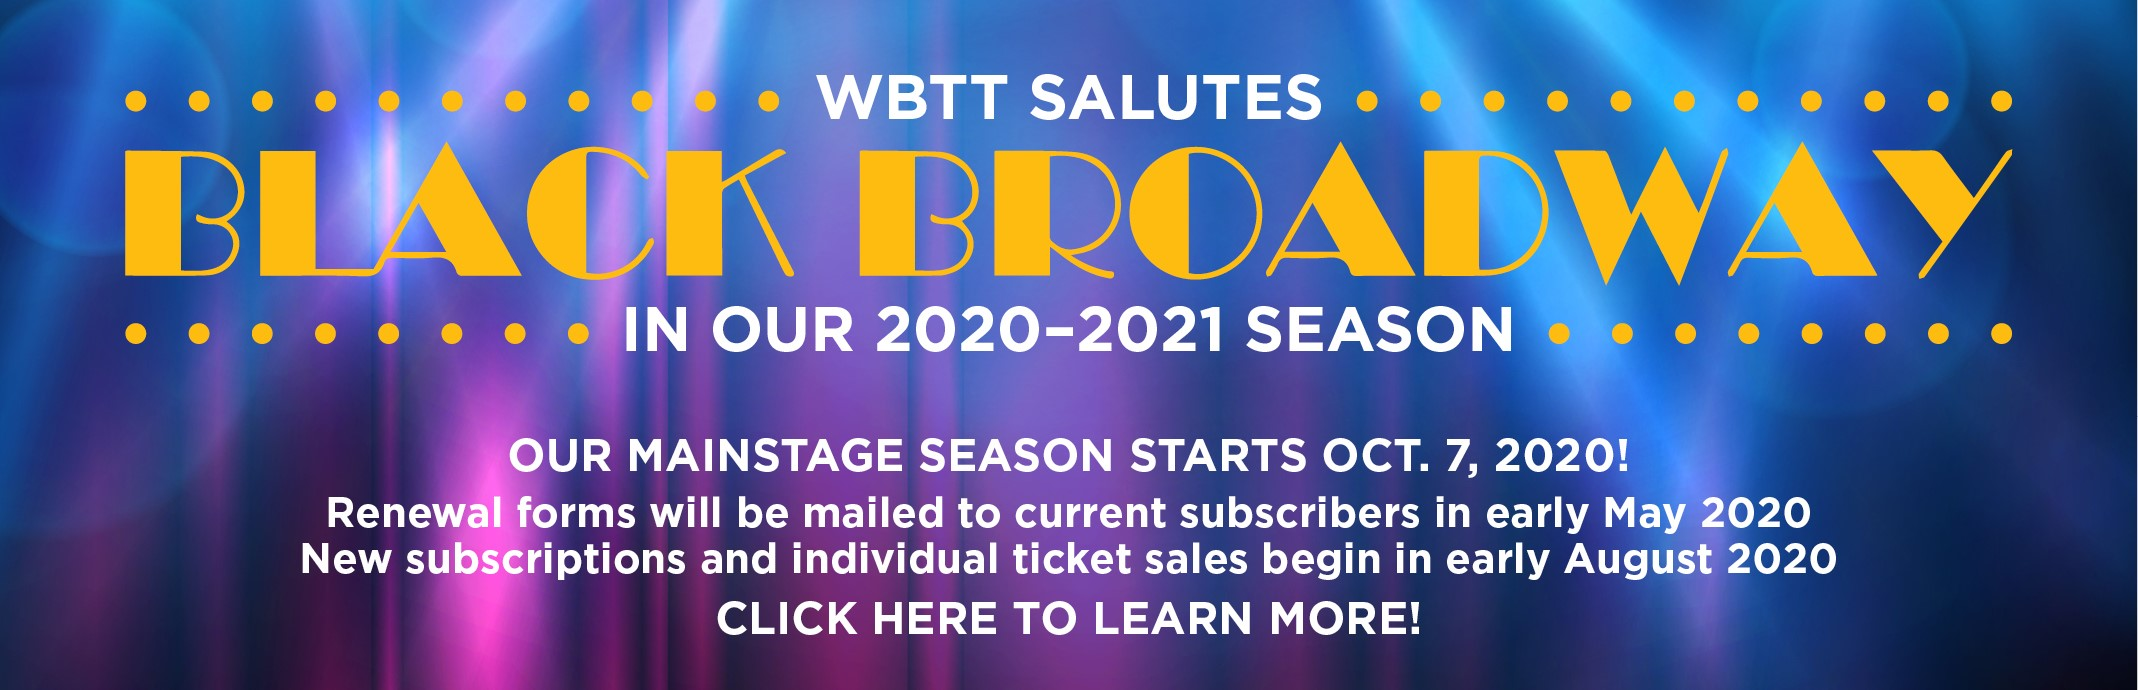 WBTT Salutes Black Broadway in our 2020-2021 Season; Our Mainstage Season Starts Oct. 7, 2020; Click Here to Learn More